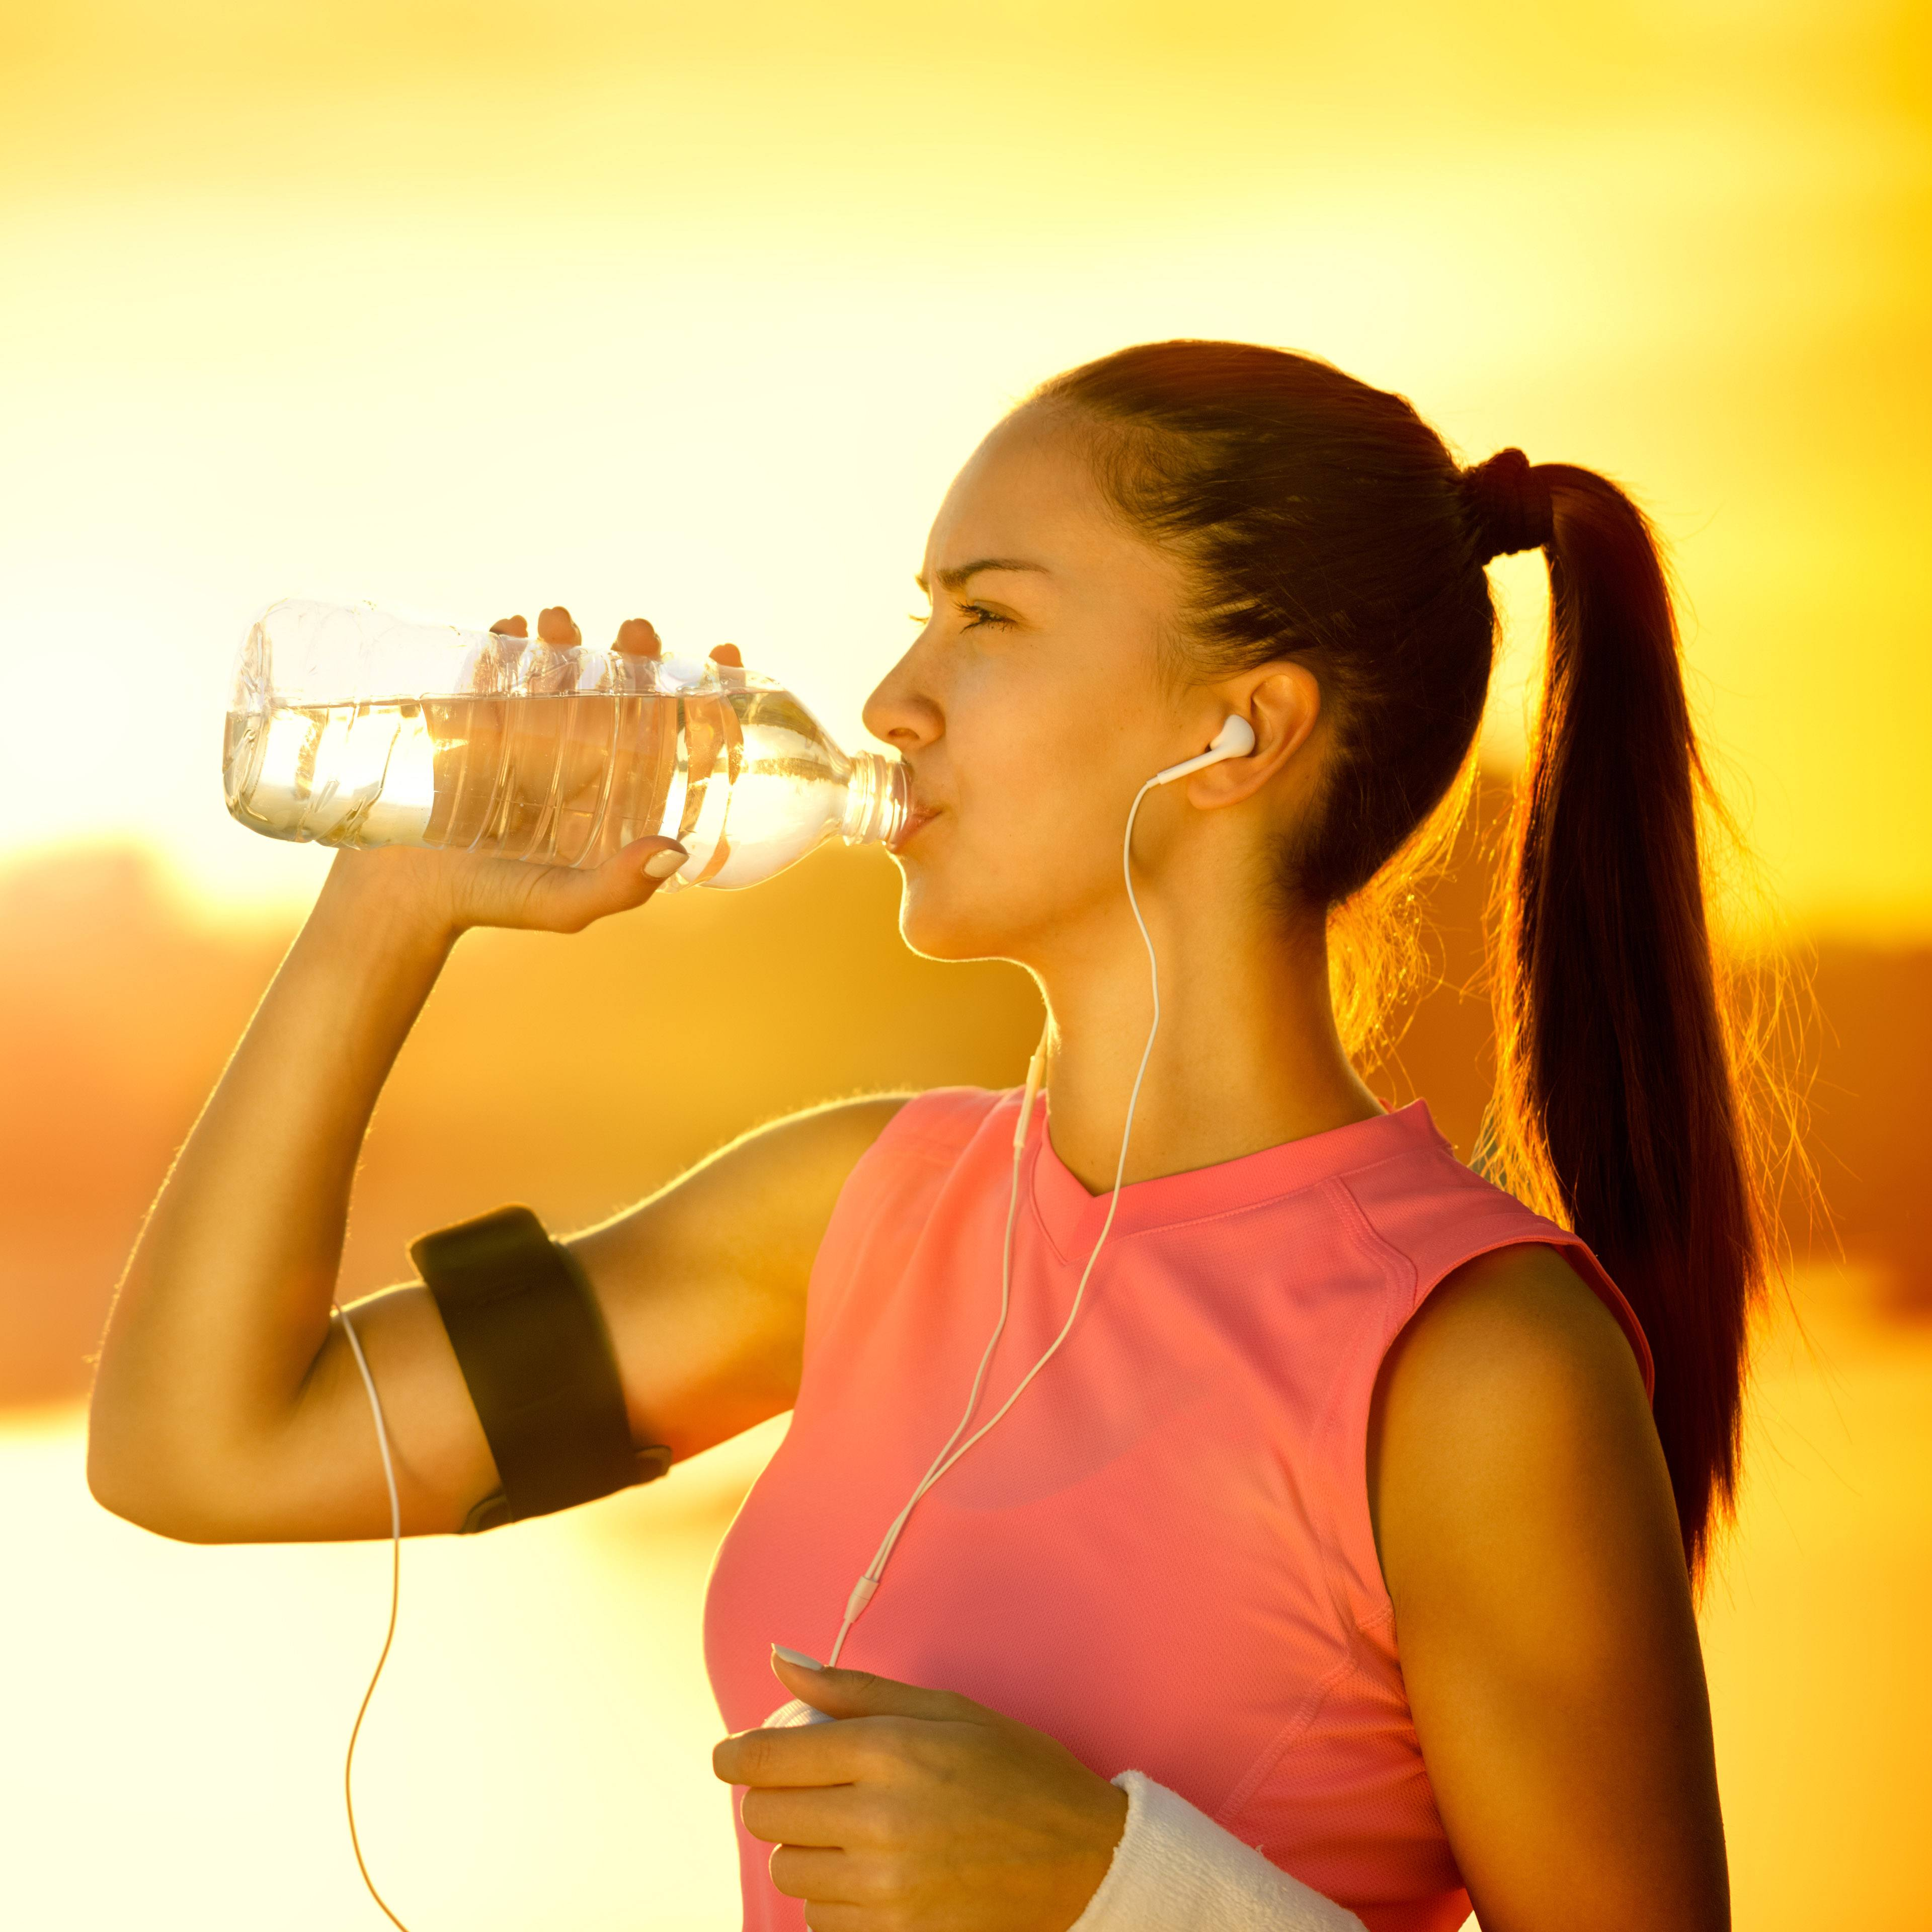 a young woman outdoors on a sunny day, drinking water and dressed for running